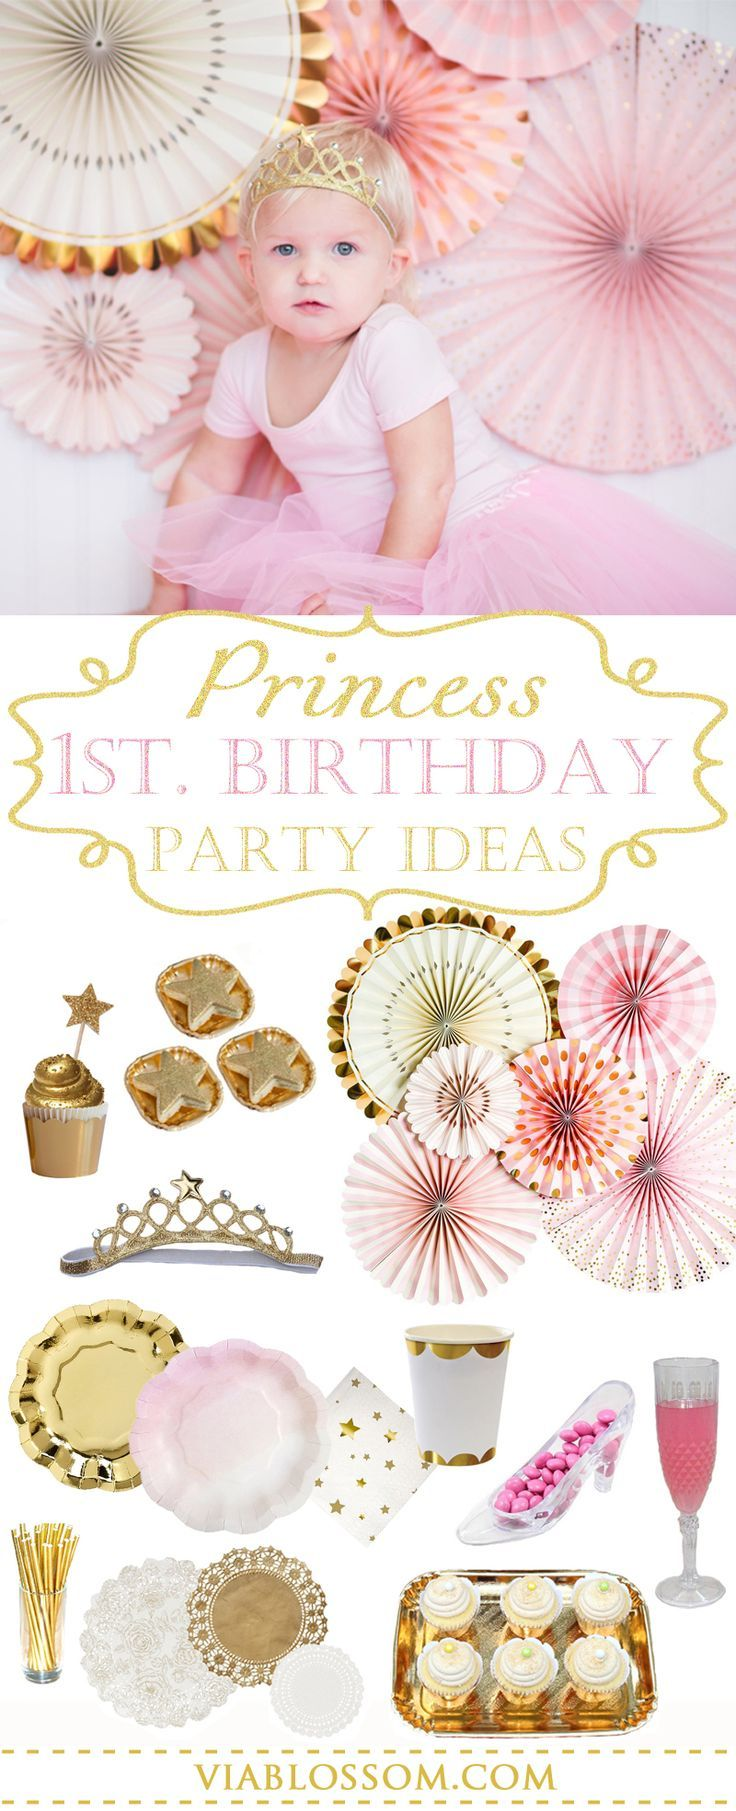 1st Birthday Princess Party Ideas for your littler girl!  If you are planning a first birthday for your princess, look no further because we have all the Princess Party Decorations you can dream of in one place!  Lots of Pink and Gold Party Supplies!  All available at  https://viablossom.com/